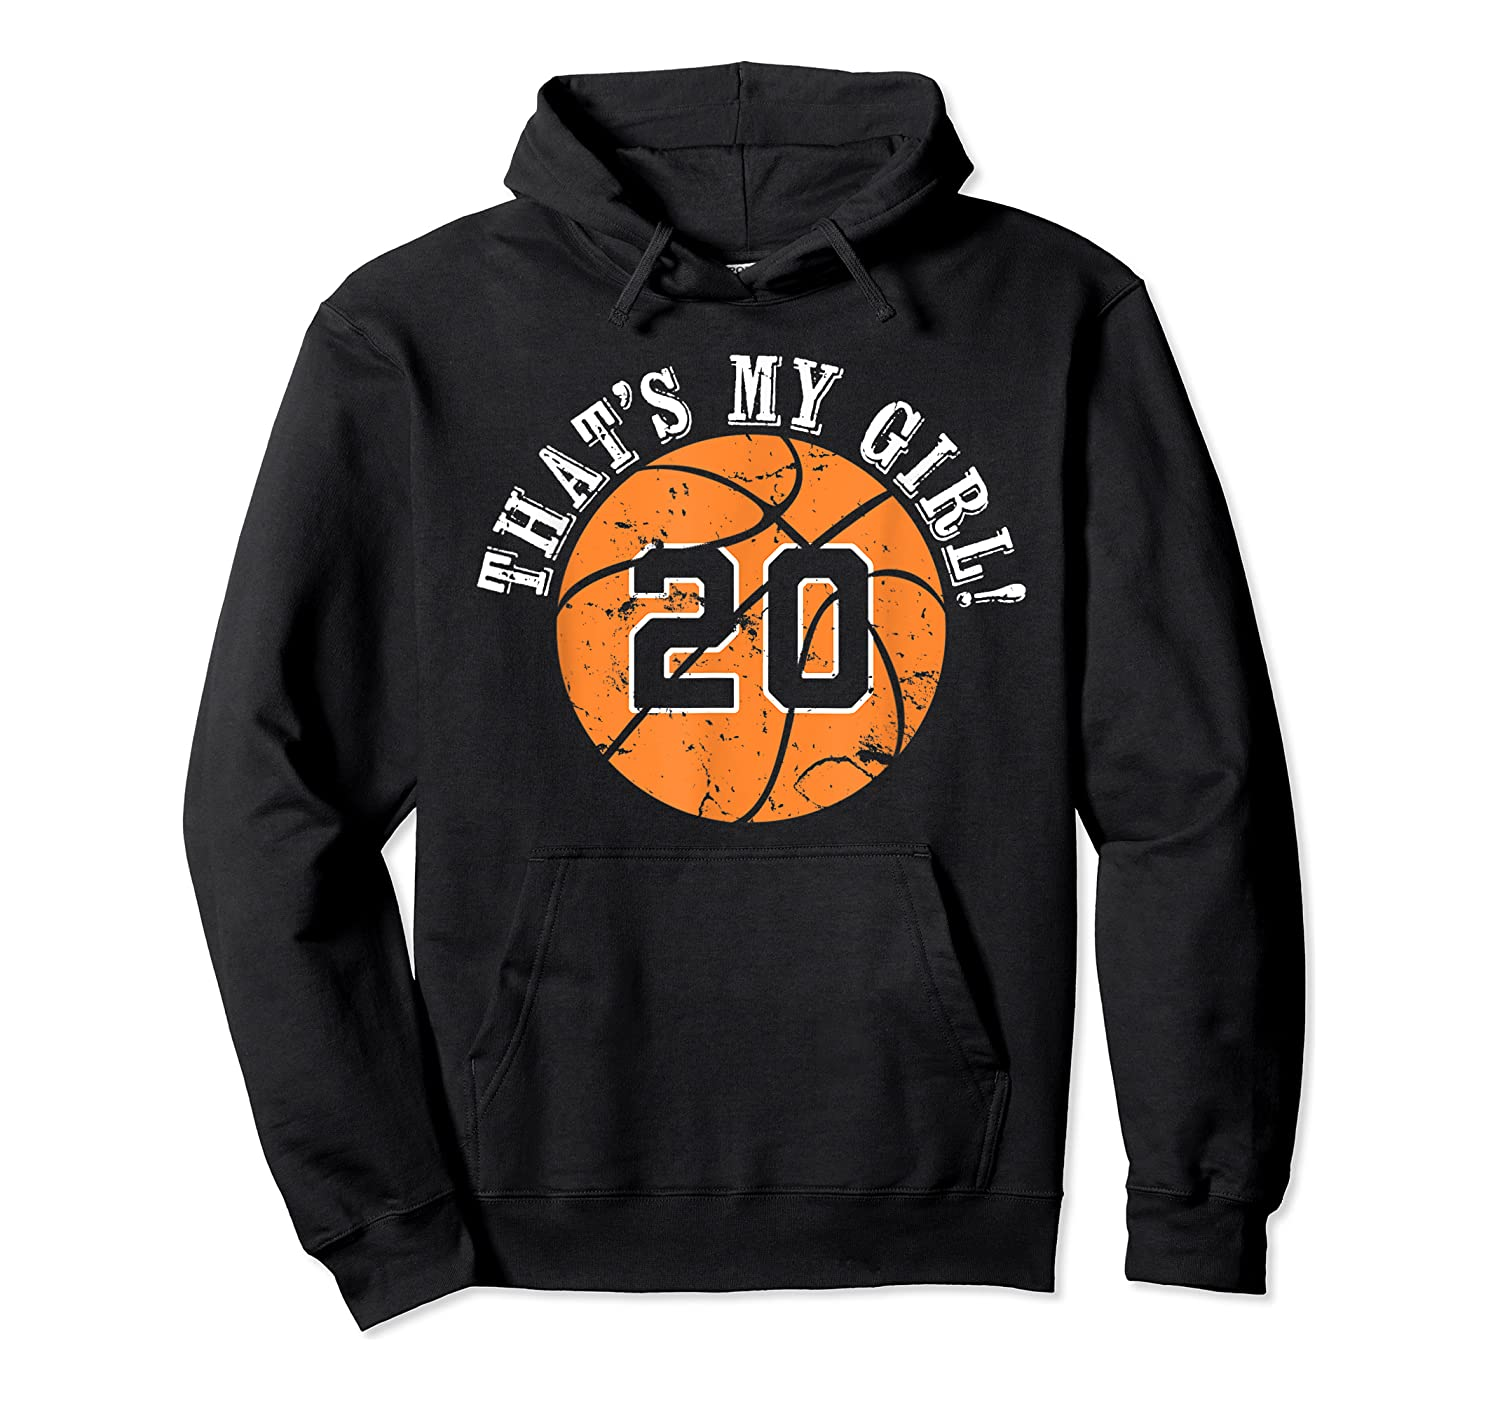 Unique That's My Girl #20 Basketball Player Mom Or Dad Gifts T-shirt Unisex Pullover Hoodie